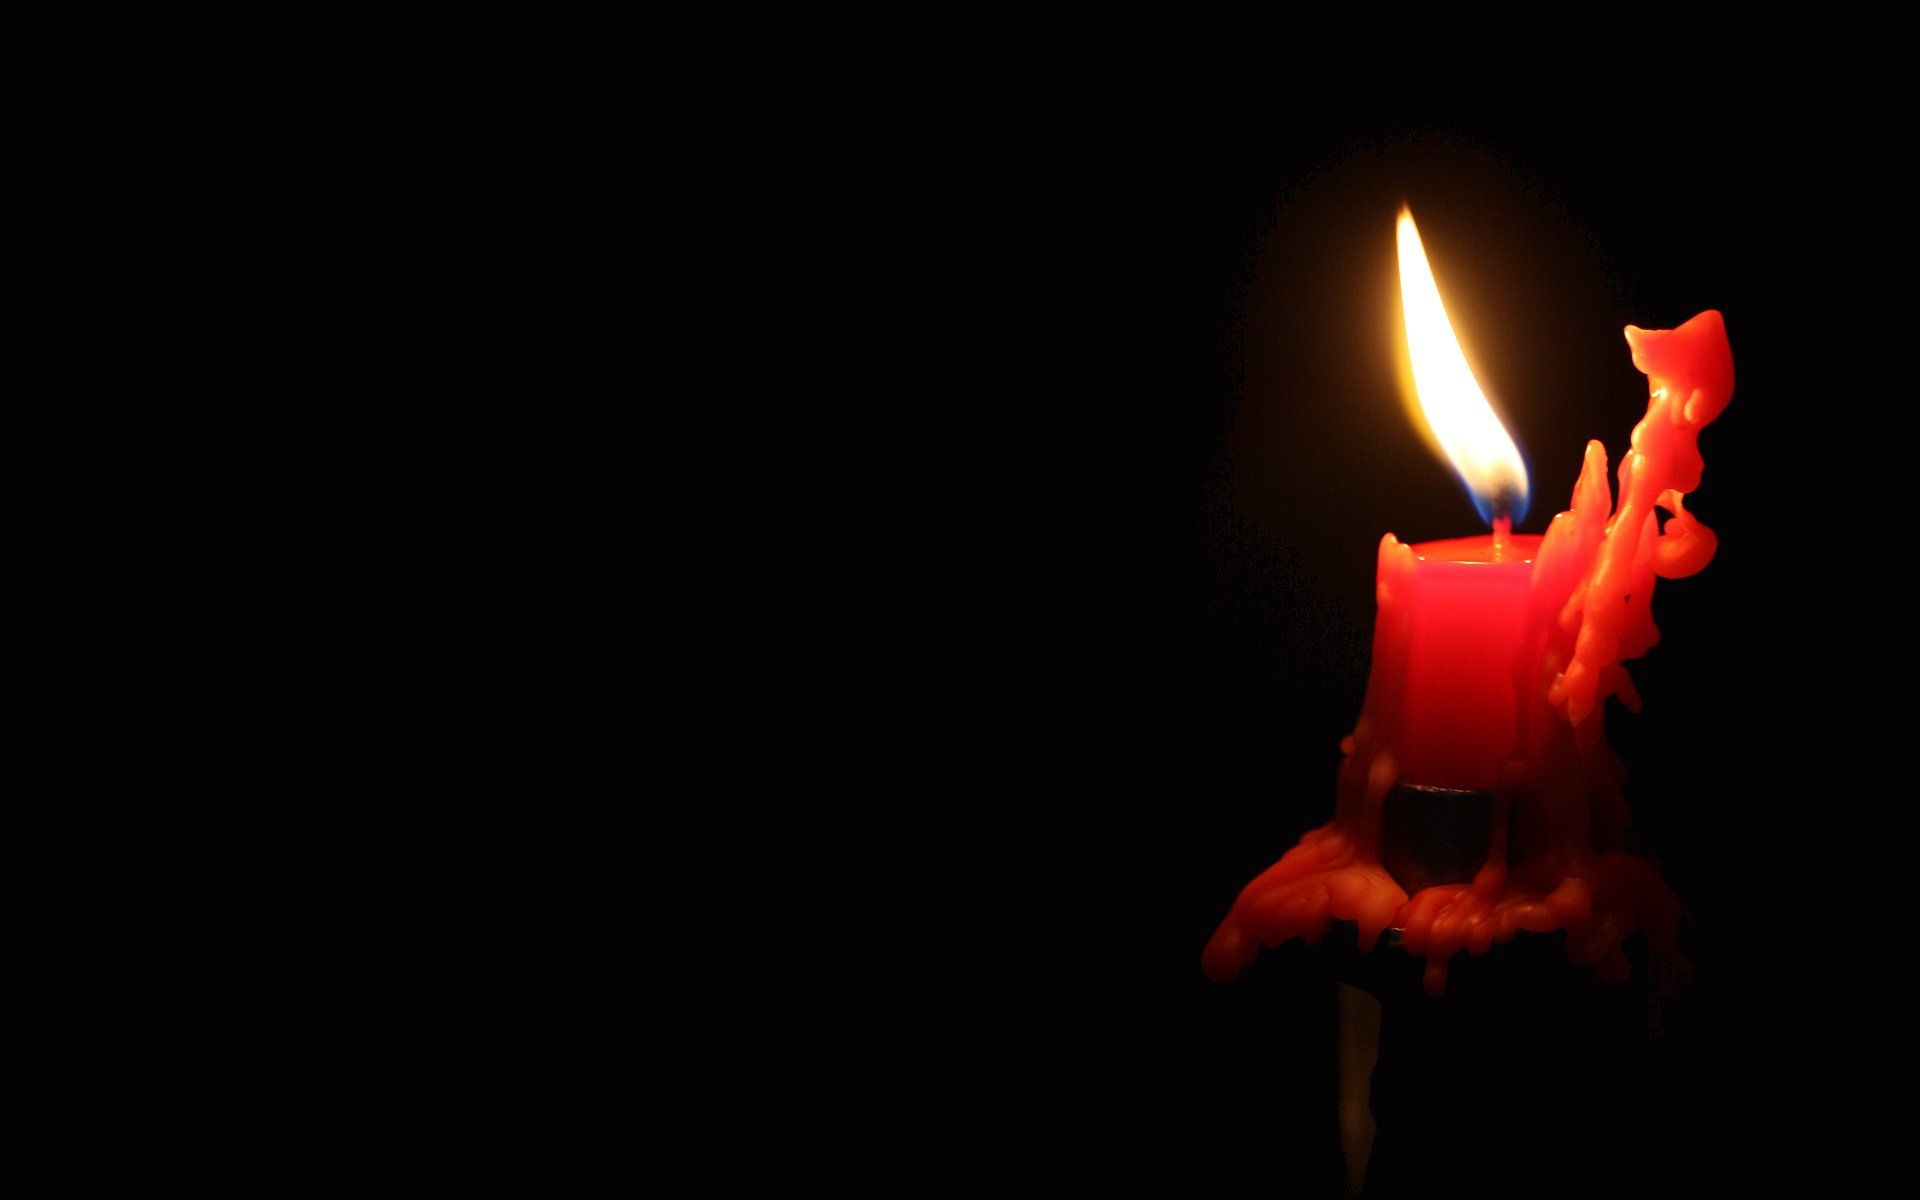 images of candles burning